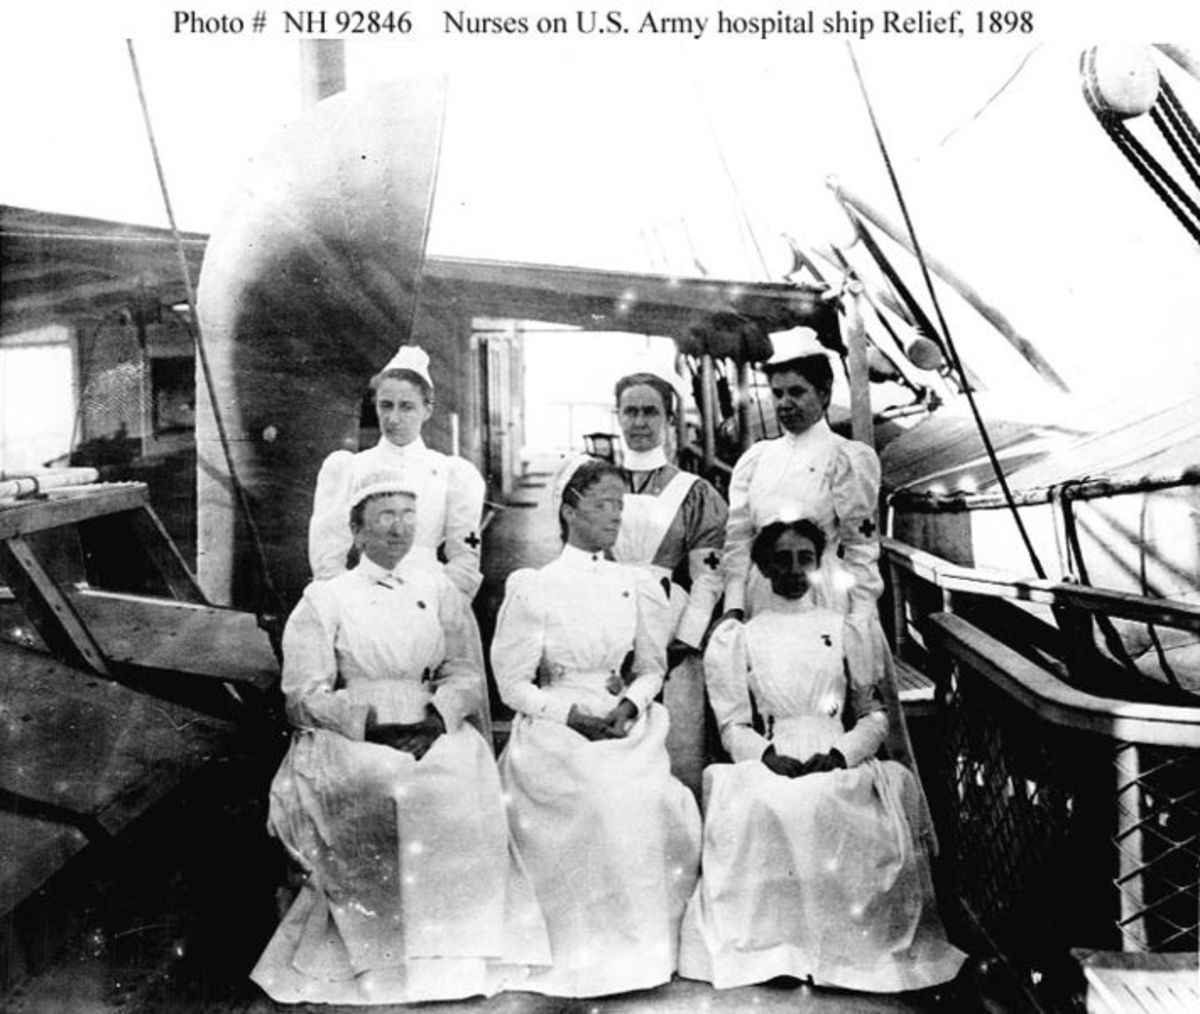 Nurses on SS Relief in 1898; US Army Hospital Ships Used Transport Nurses Early On